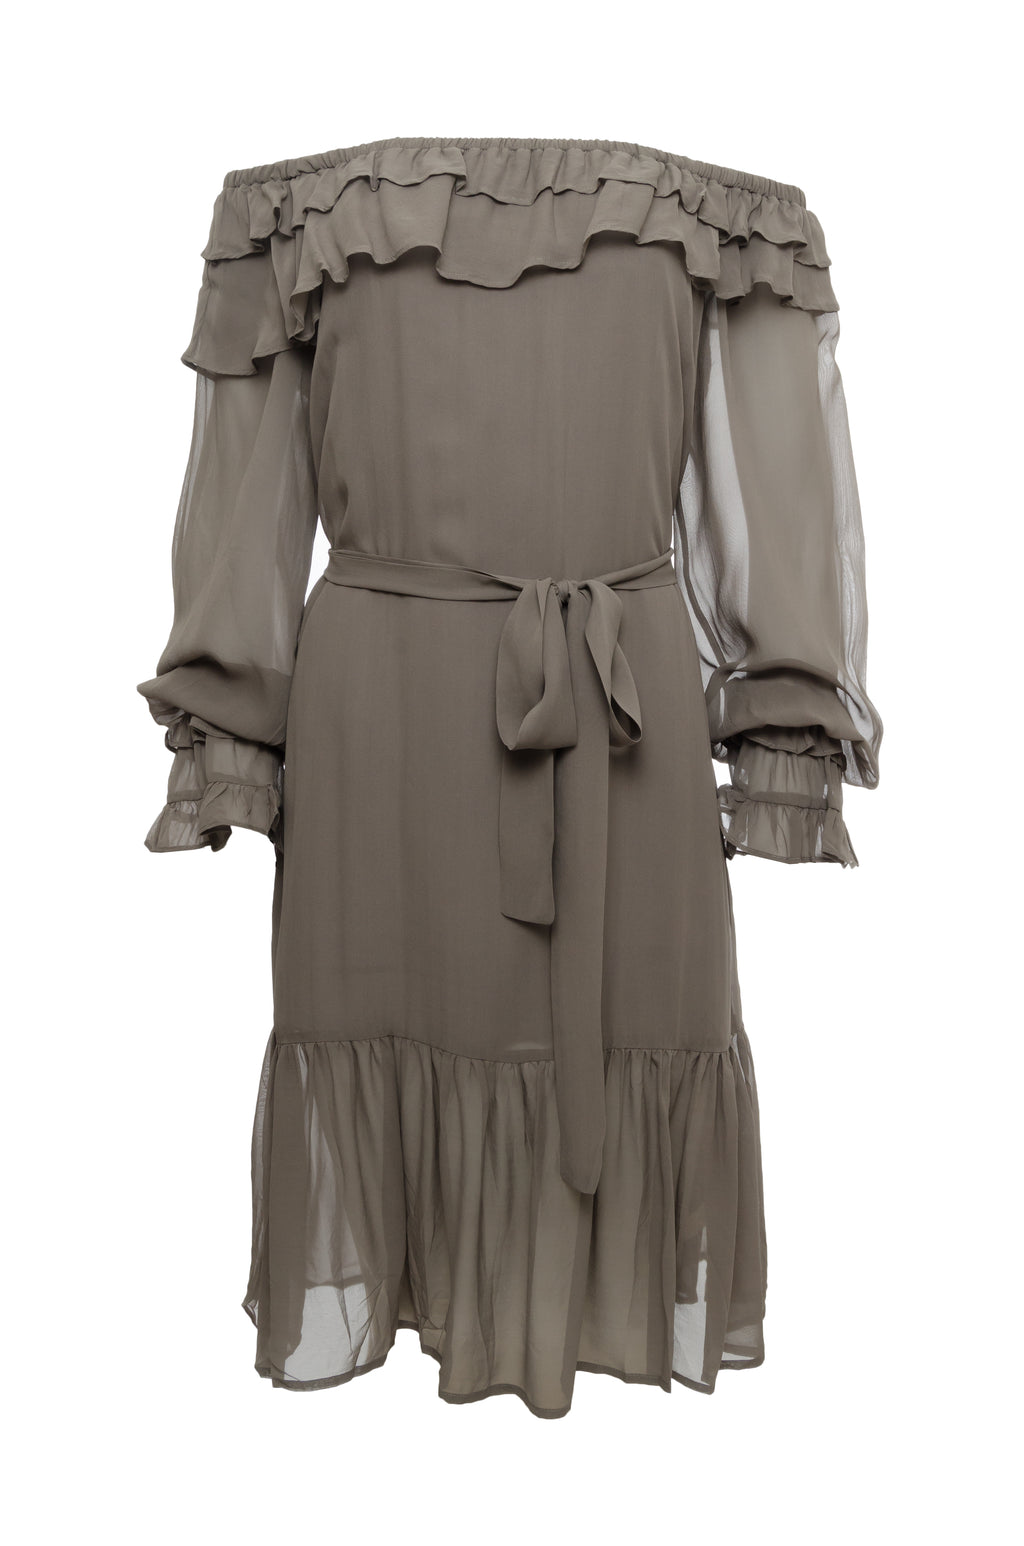 The Mila Silk Ruffle Dress in steeple grey; shown with matching sash worn as belt.